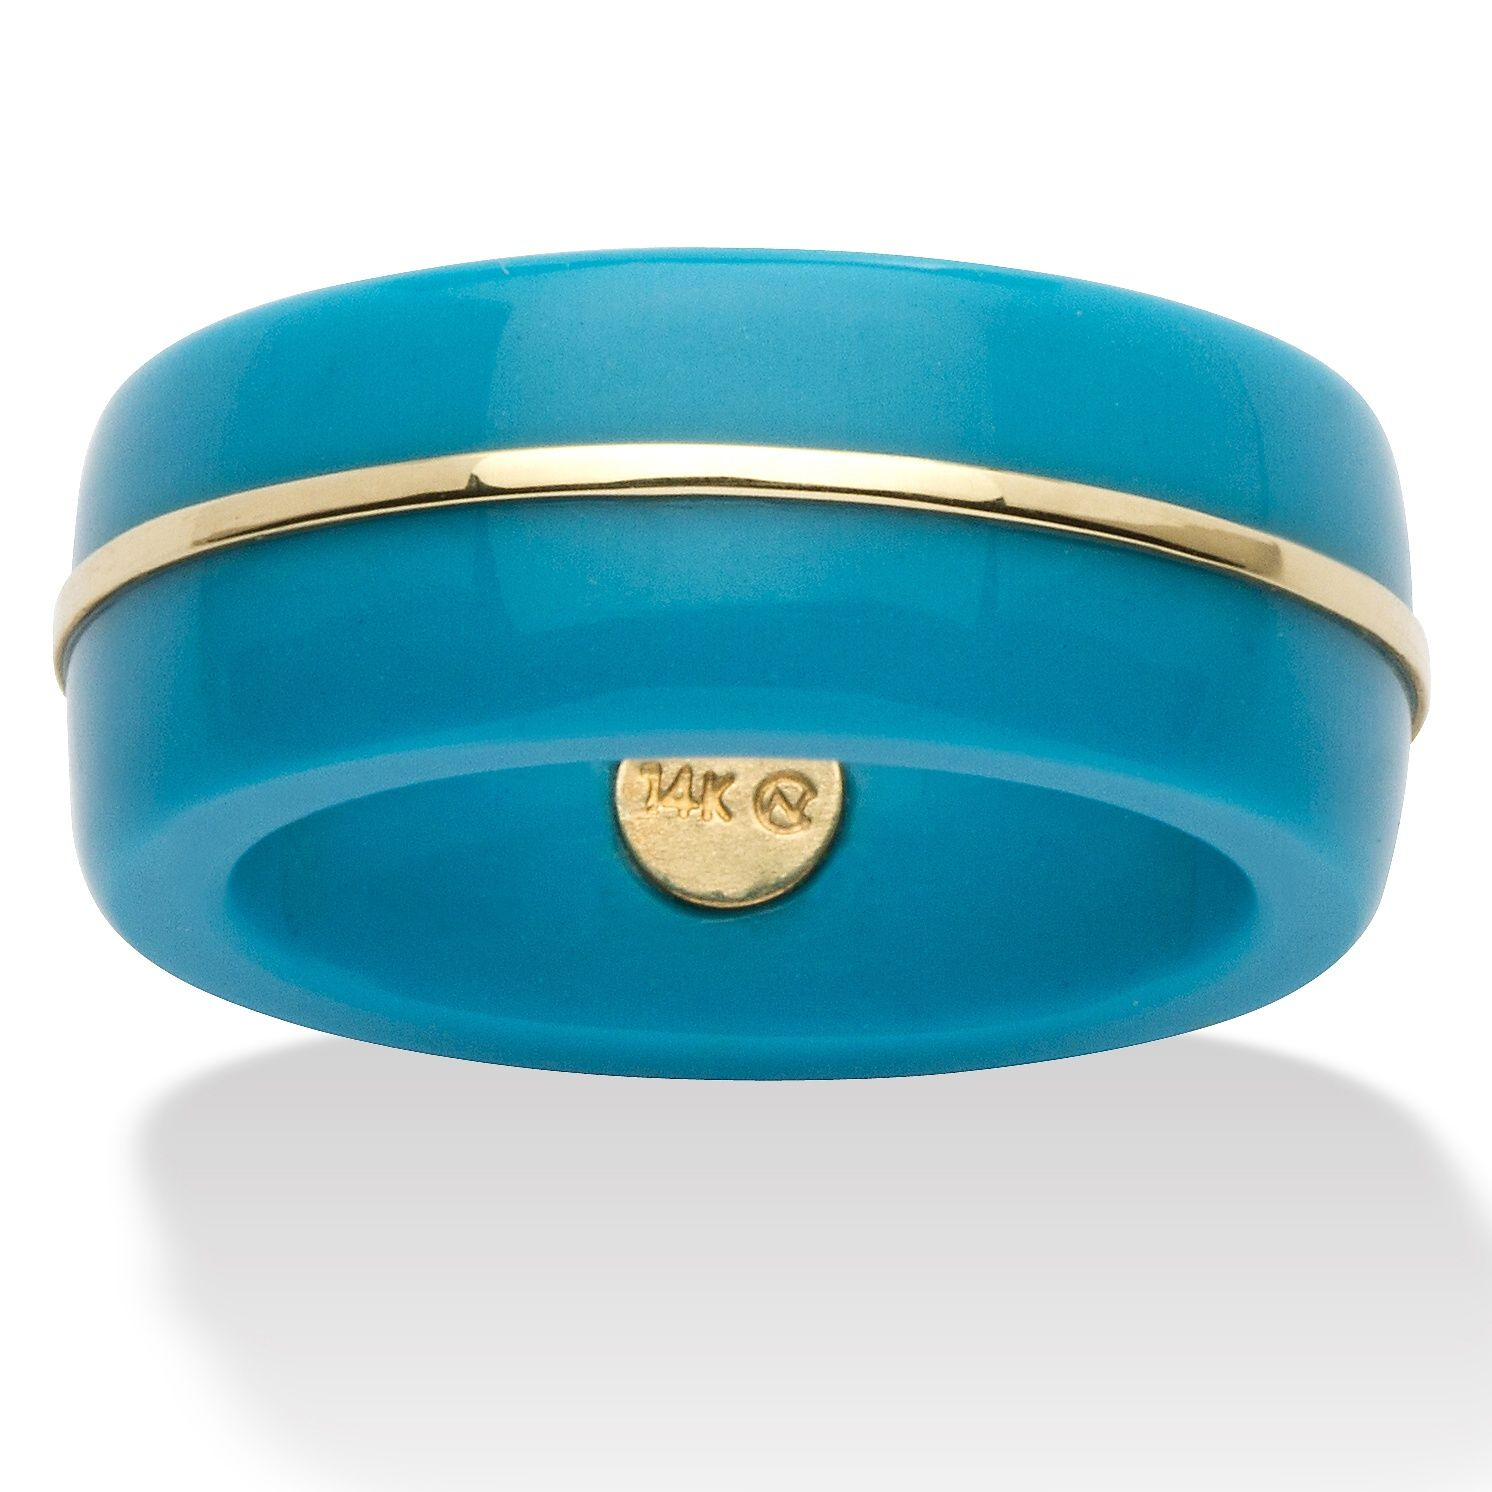 Instantly transform your everyday style into outstanding! This vibrant Viennese turquoise band adds just the right touch-oseHEe2v